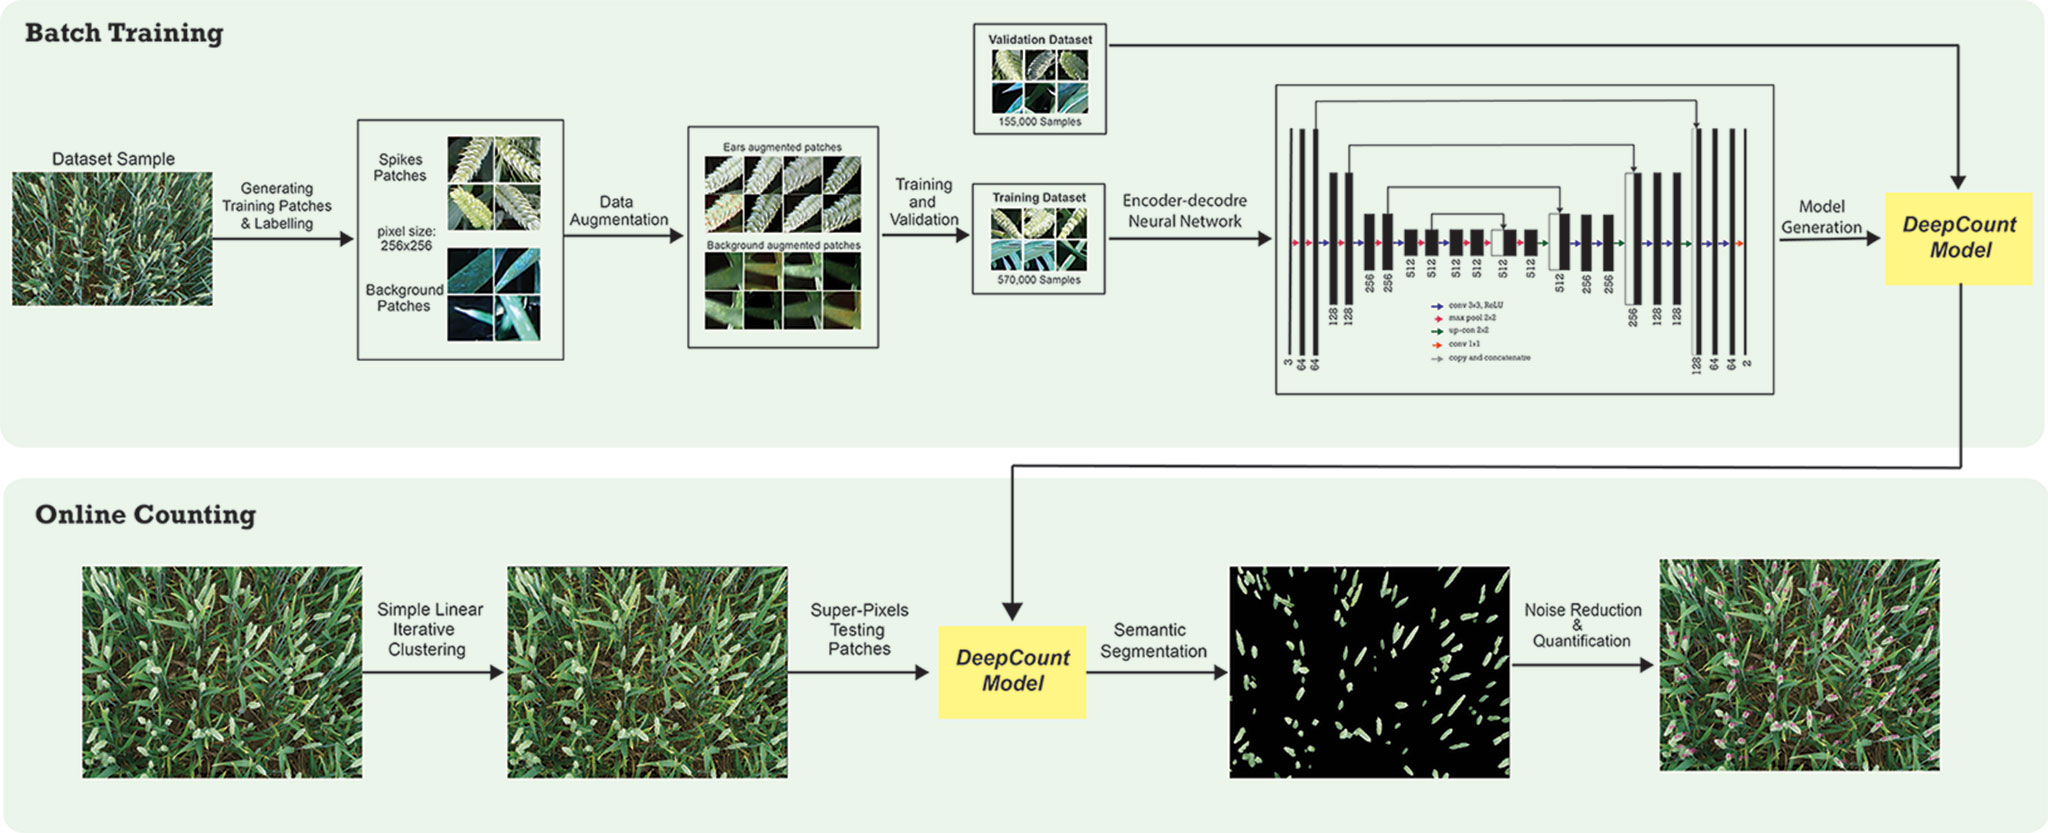 Frontiers | DeepCount: In-Field Automatic Quantification of